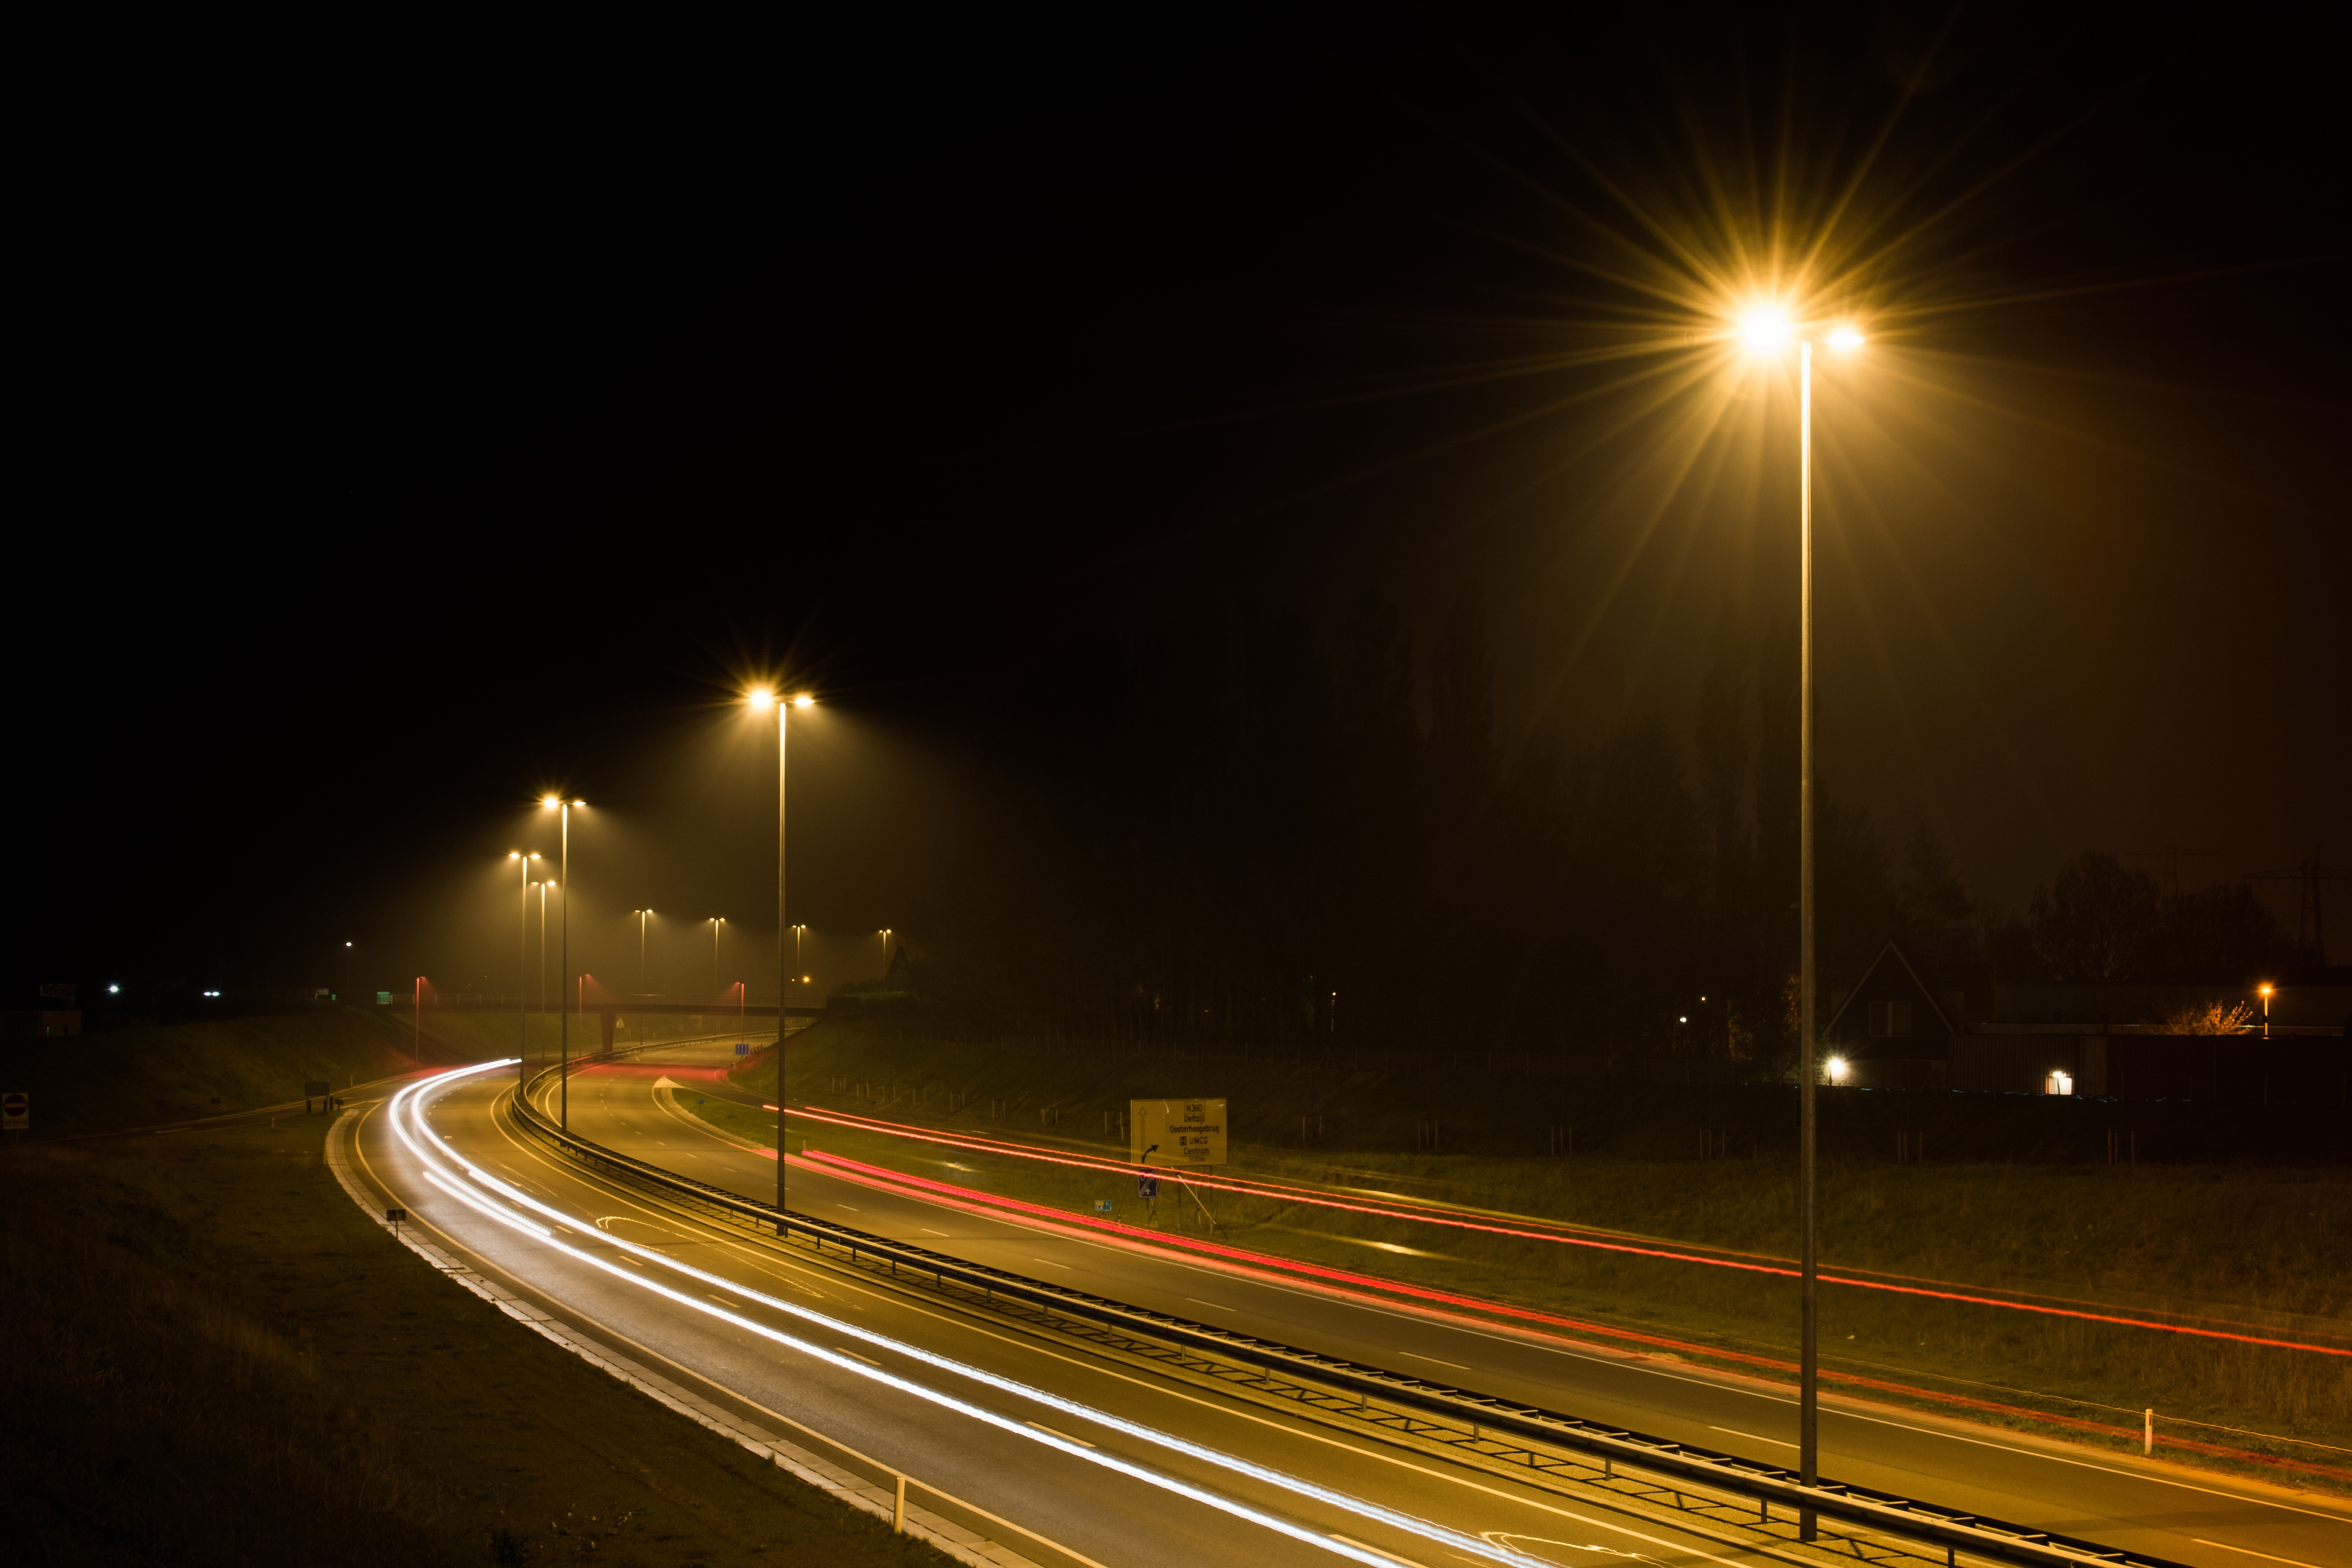 Traffic on the Road, Dark, Highway, Path, Pathway, HQ Photo